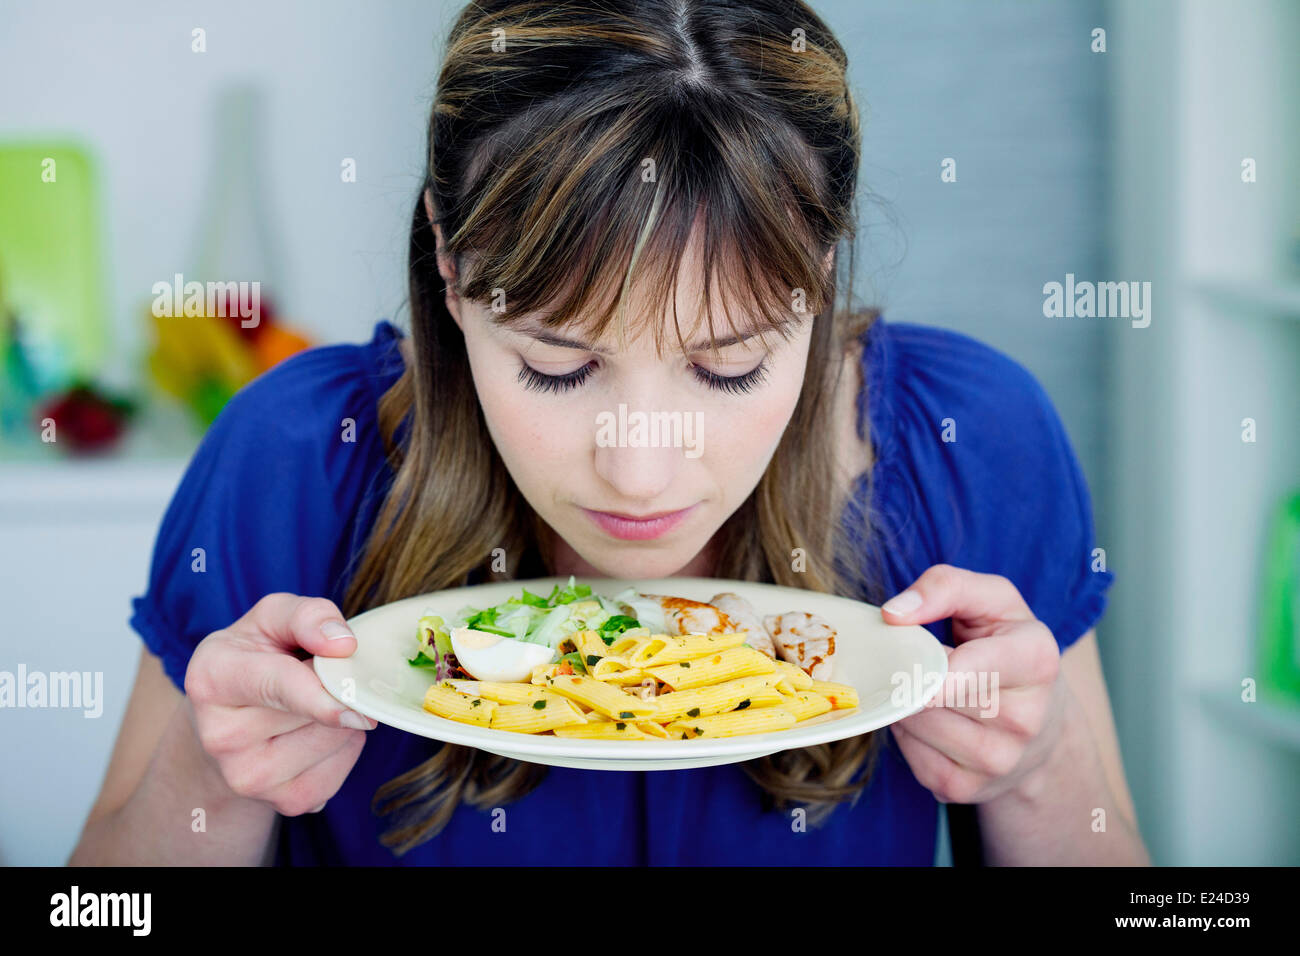 Woman with a meal - Stock Image